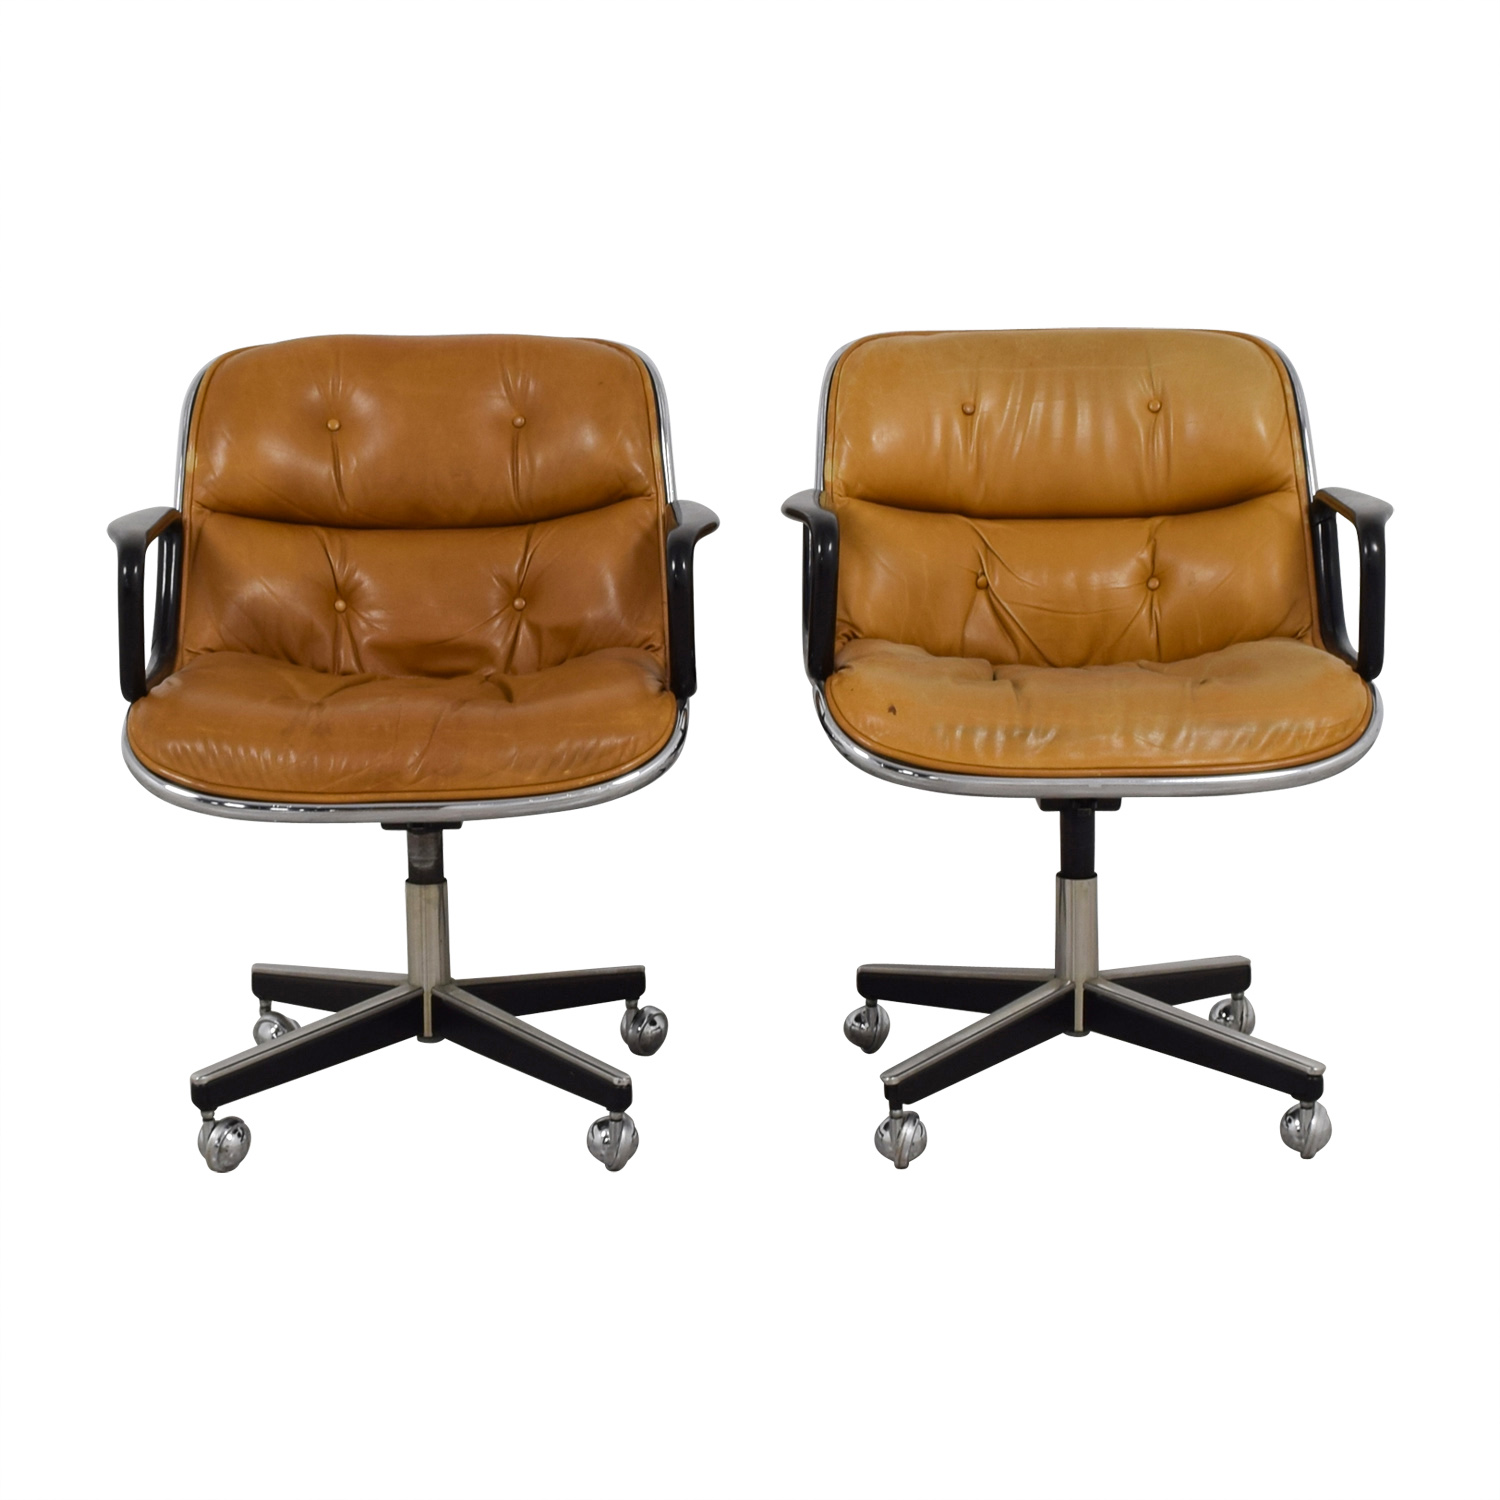 Knoll Knoll Pollock Cognac Leather Executive Chairs second hand